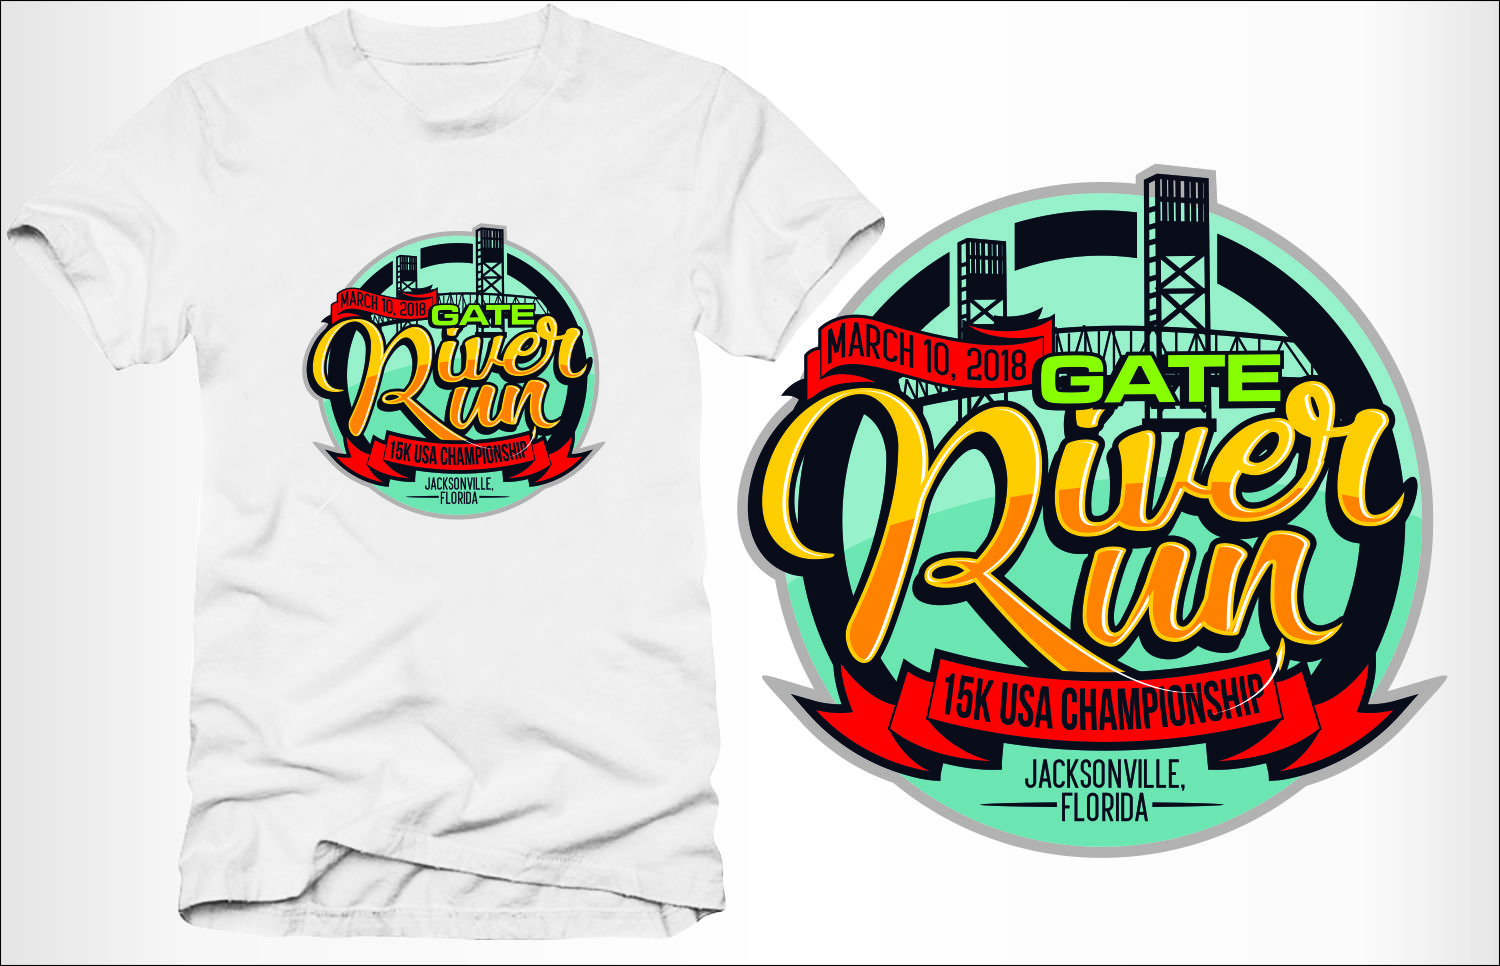 Professional Bold T Shirt Design For Gate Petroleum By Eightball